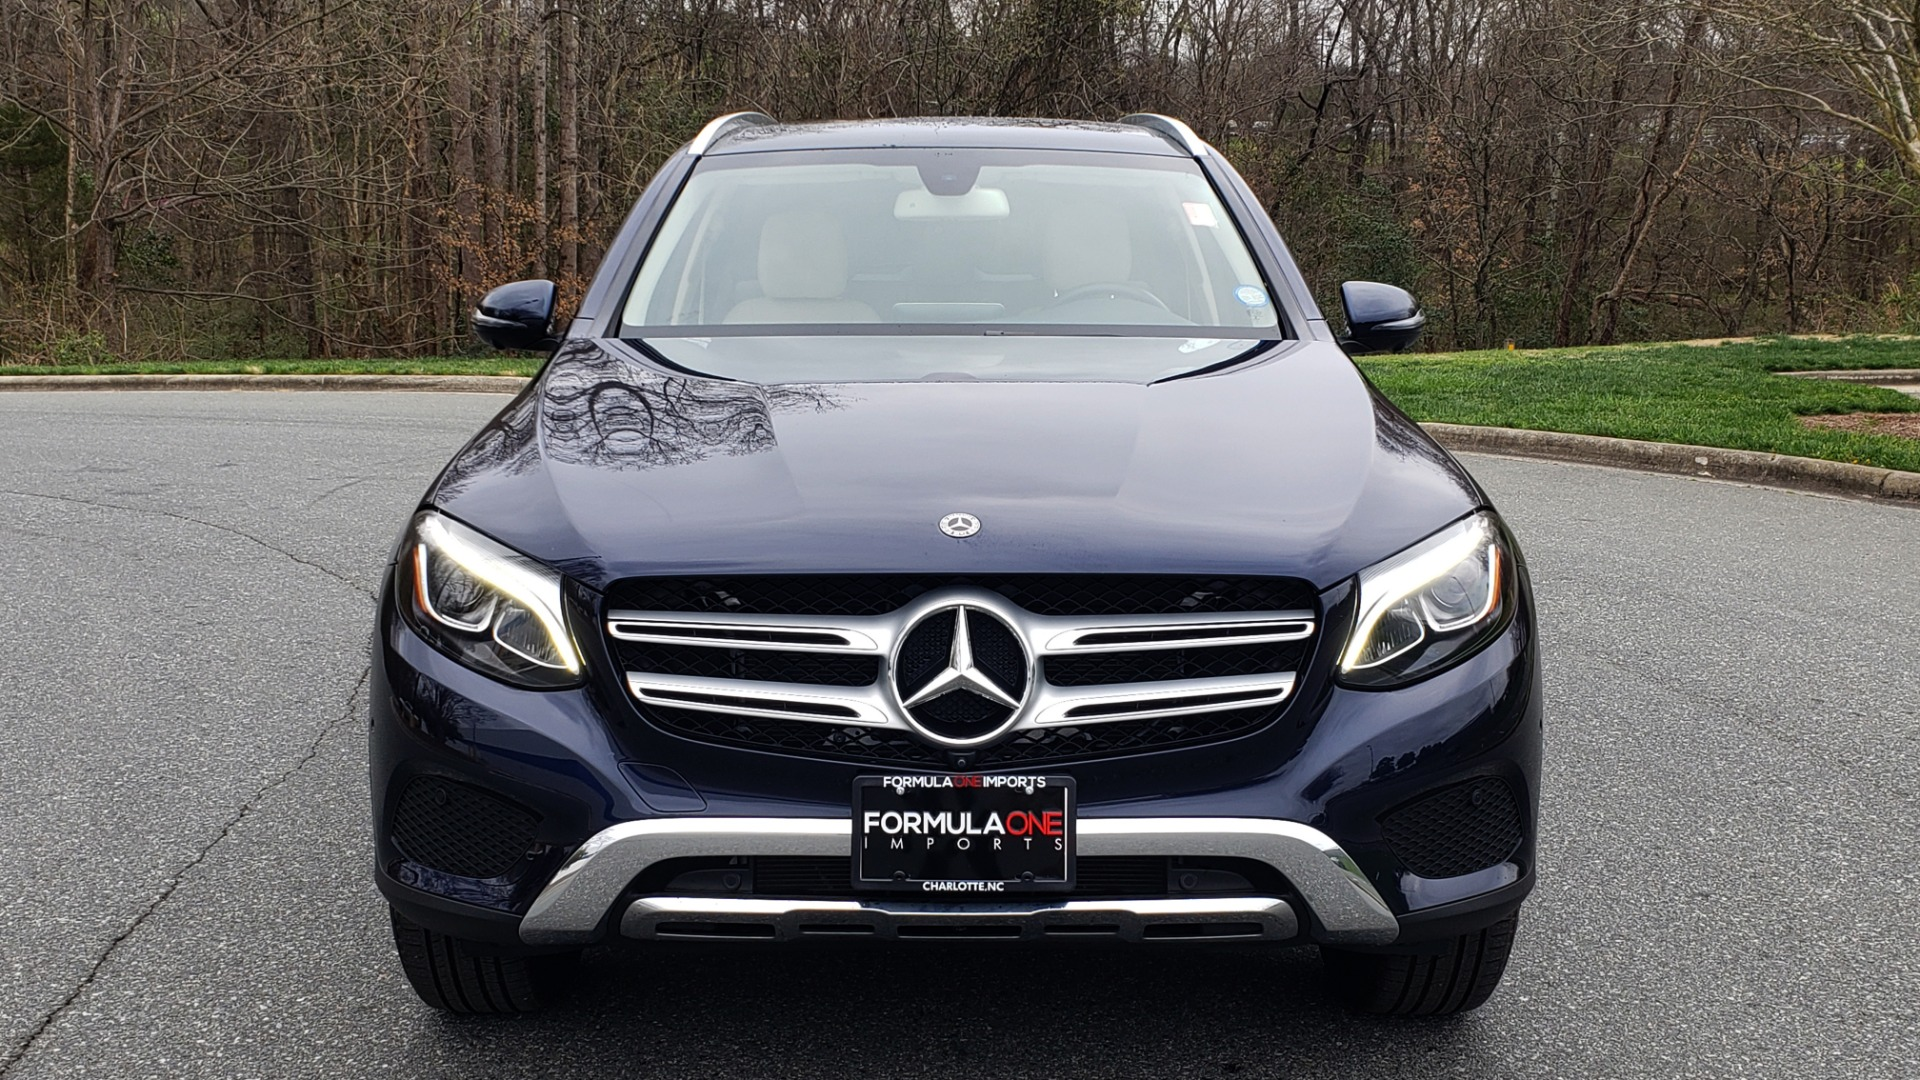 Used 2019 Mercedes-Benz GLC 300 PREMIUM / PRK ASST / NAV / PANO-ROOF / REARVIEW / HTD STS for sale Sold at Formula Imports in Charlotte NC 28227 22